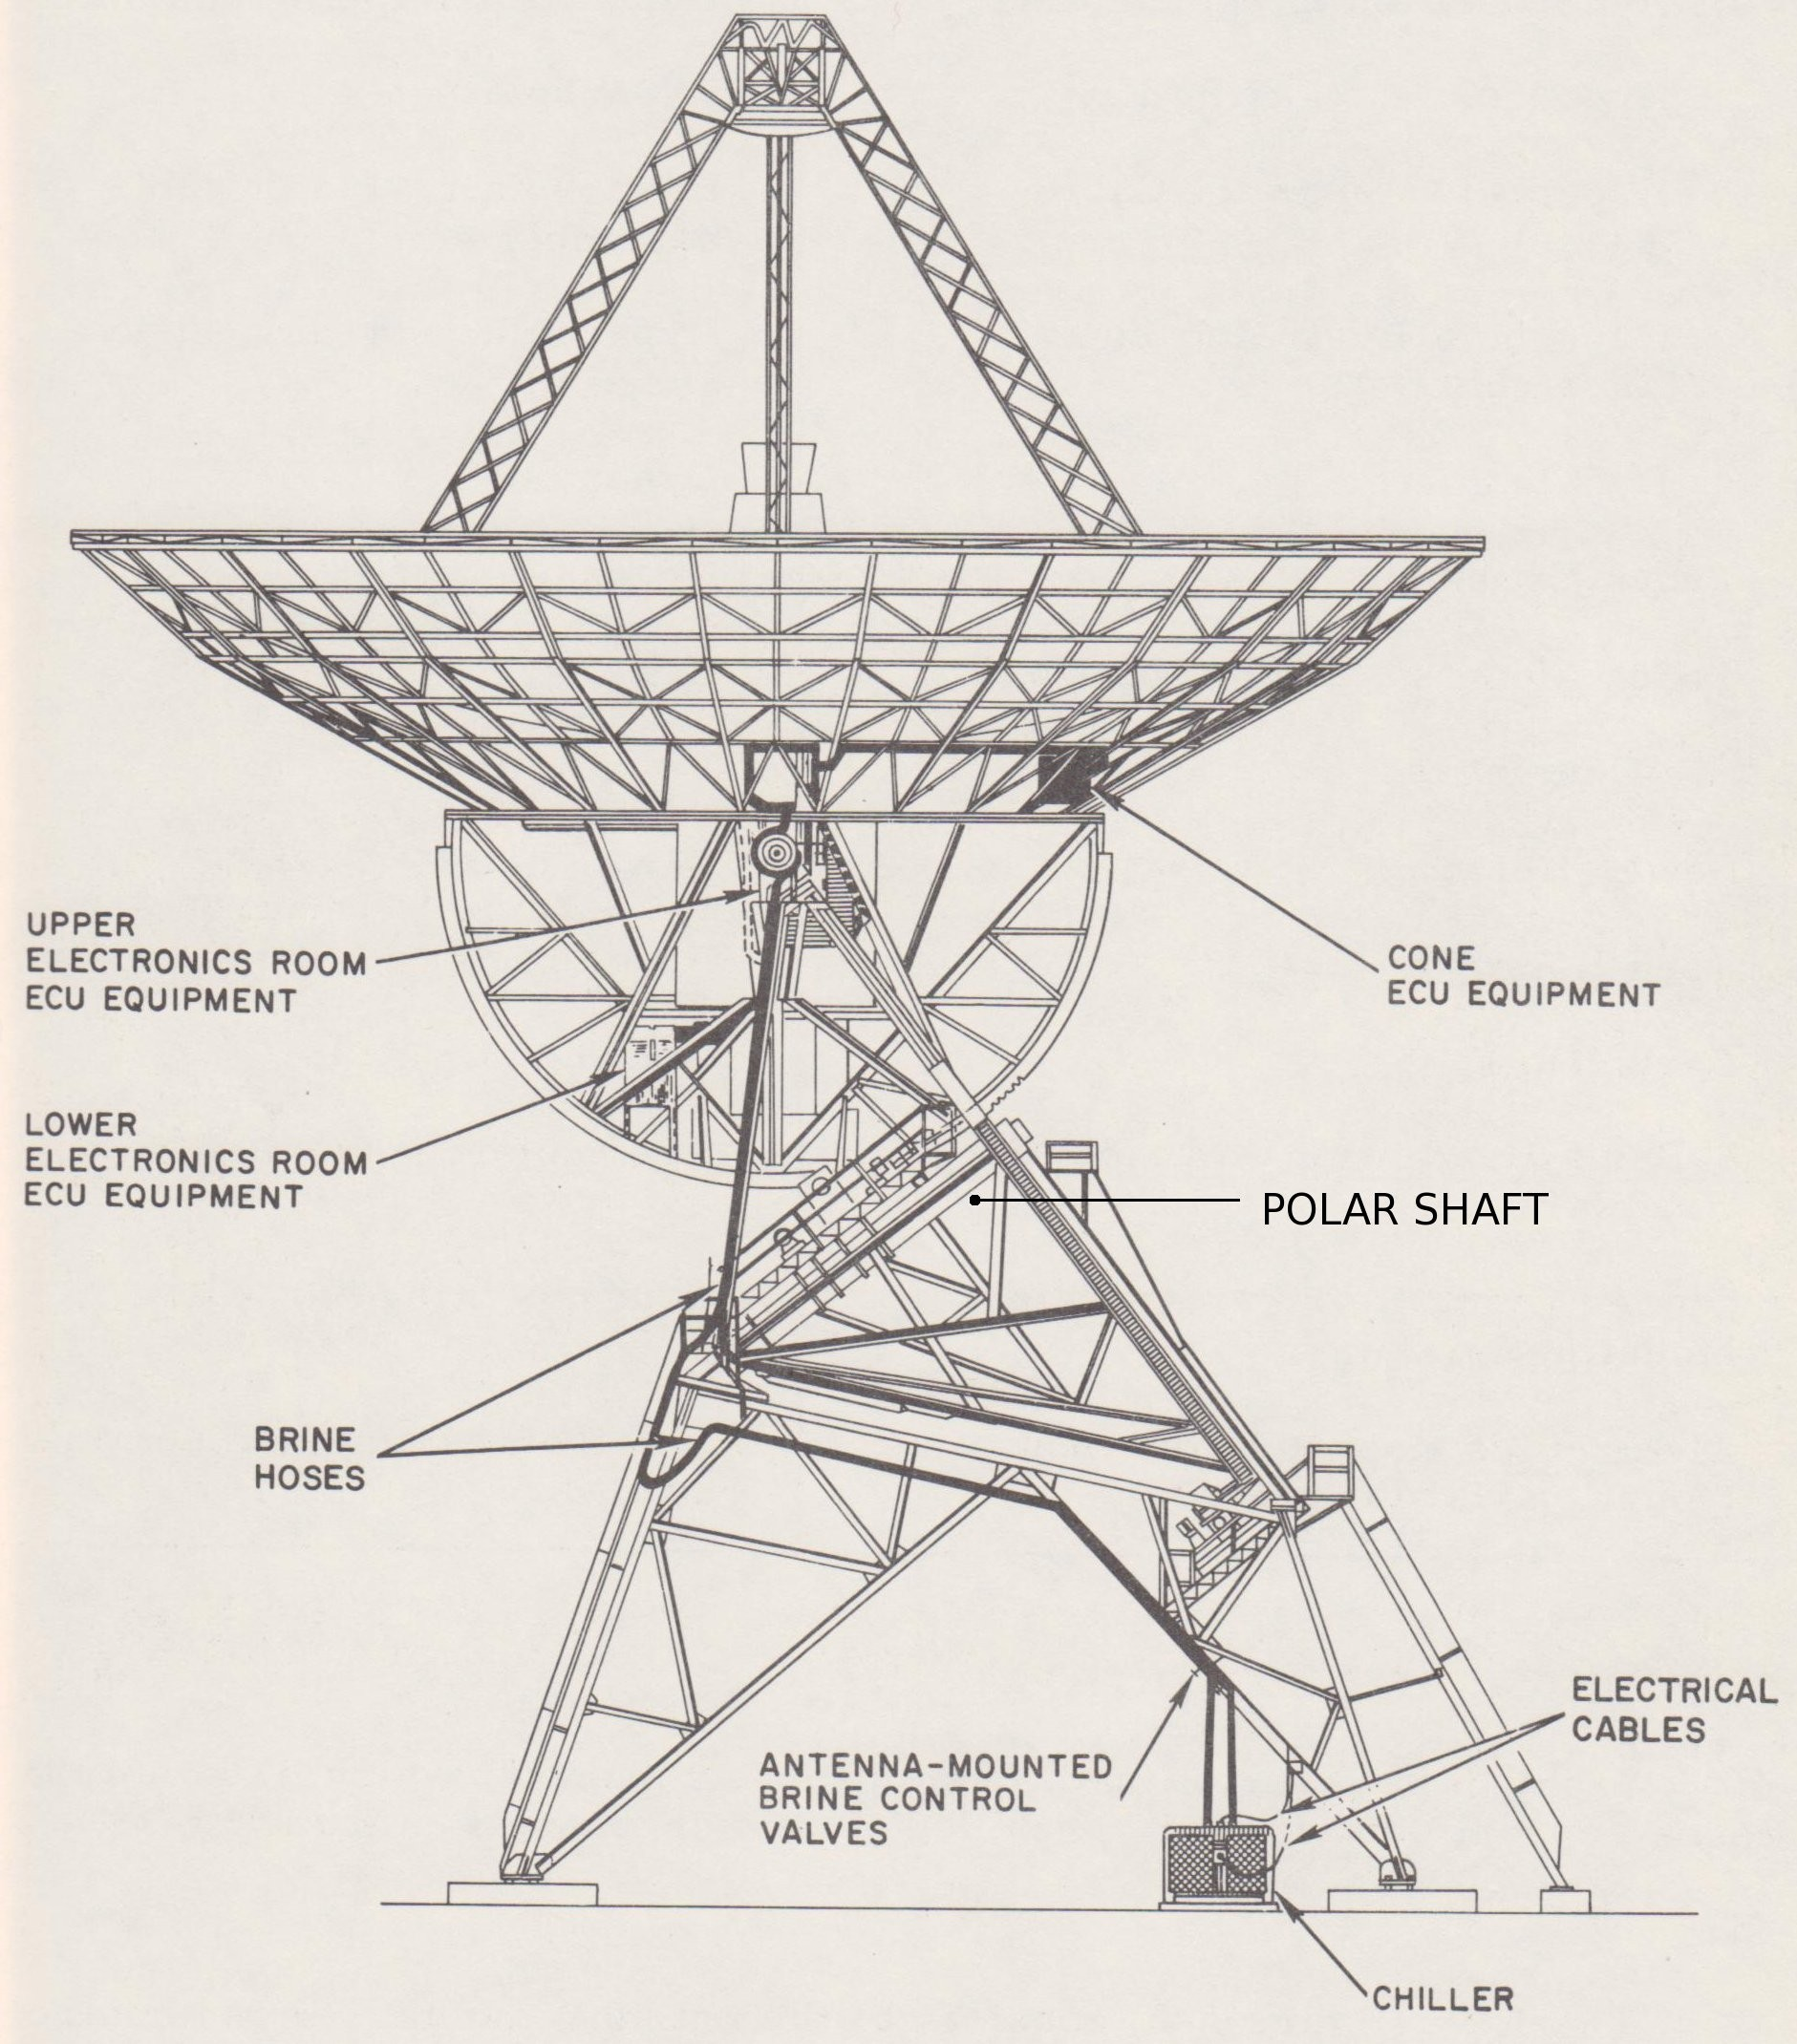 Dss 51 - Sister Antennas Diagram